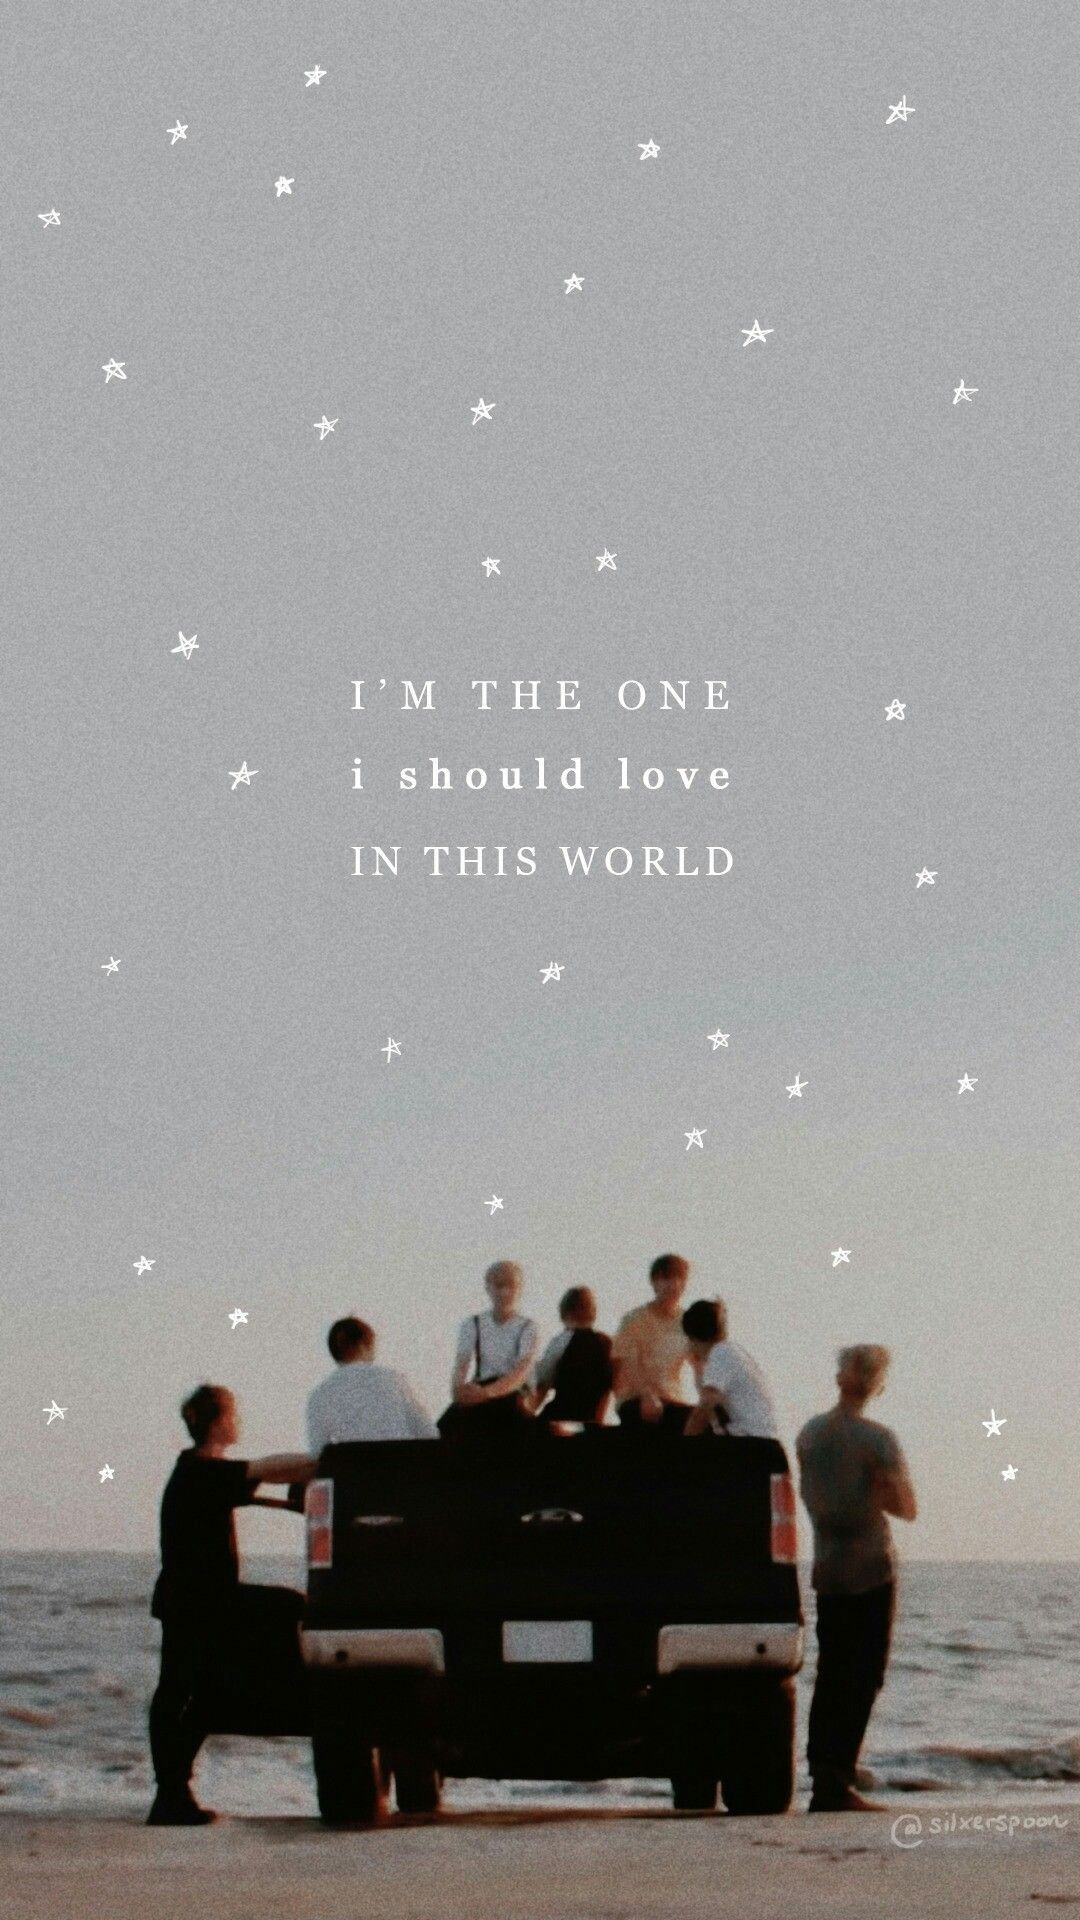 Bts Wallpaper Aesthetic Free Photo And Wallpaper Bts Wallpaper Lyrics Bts Qoutes Bts Quotes